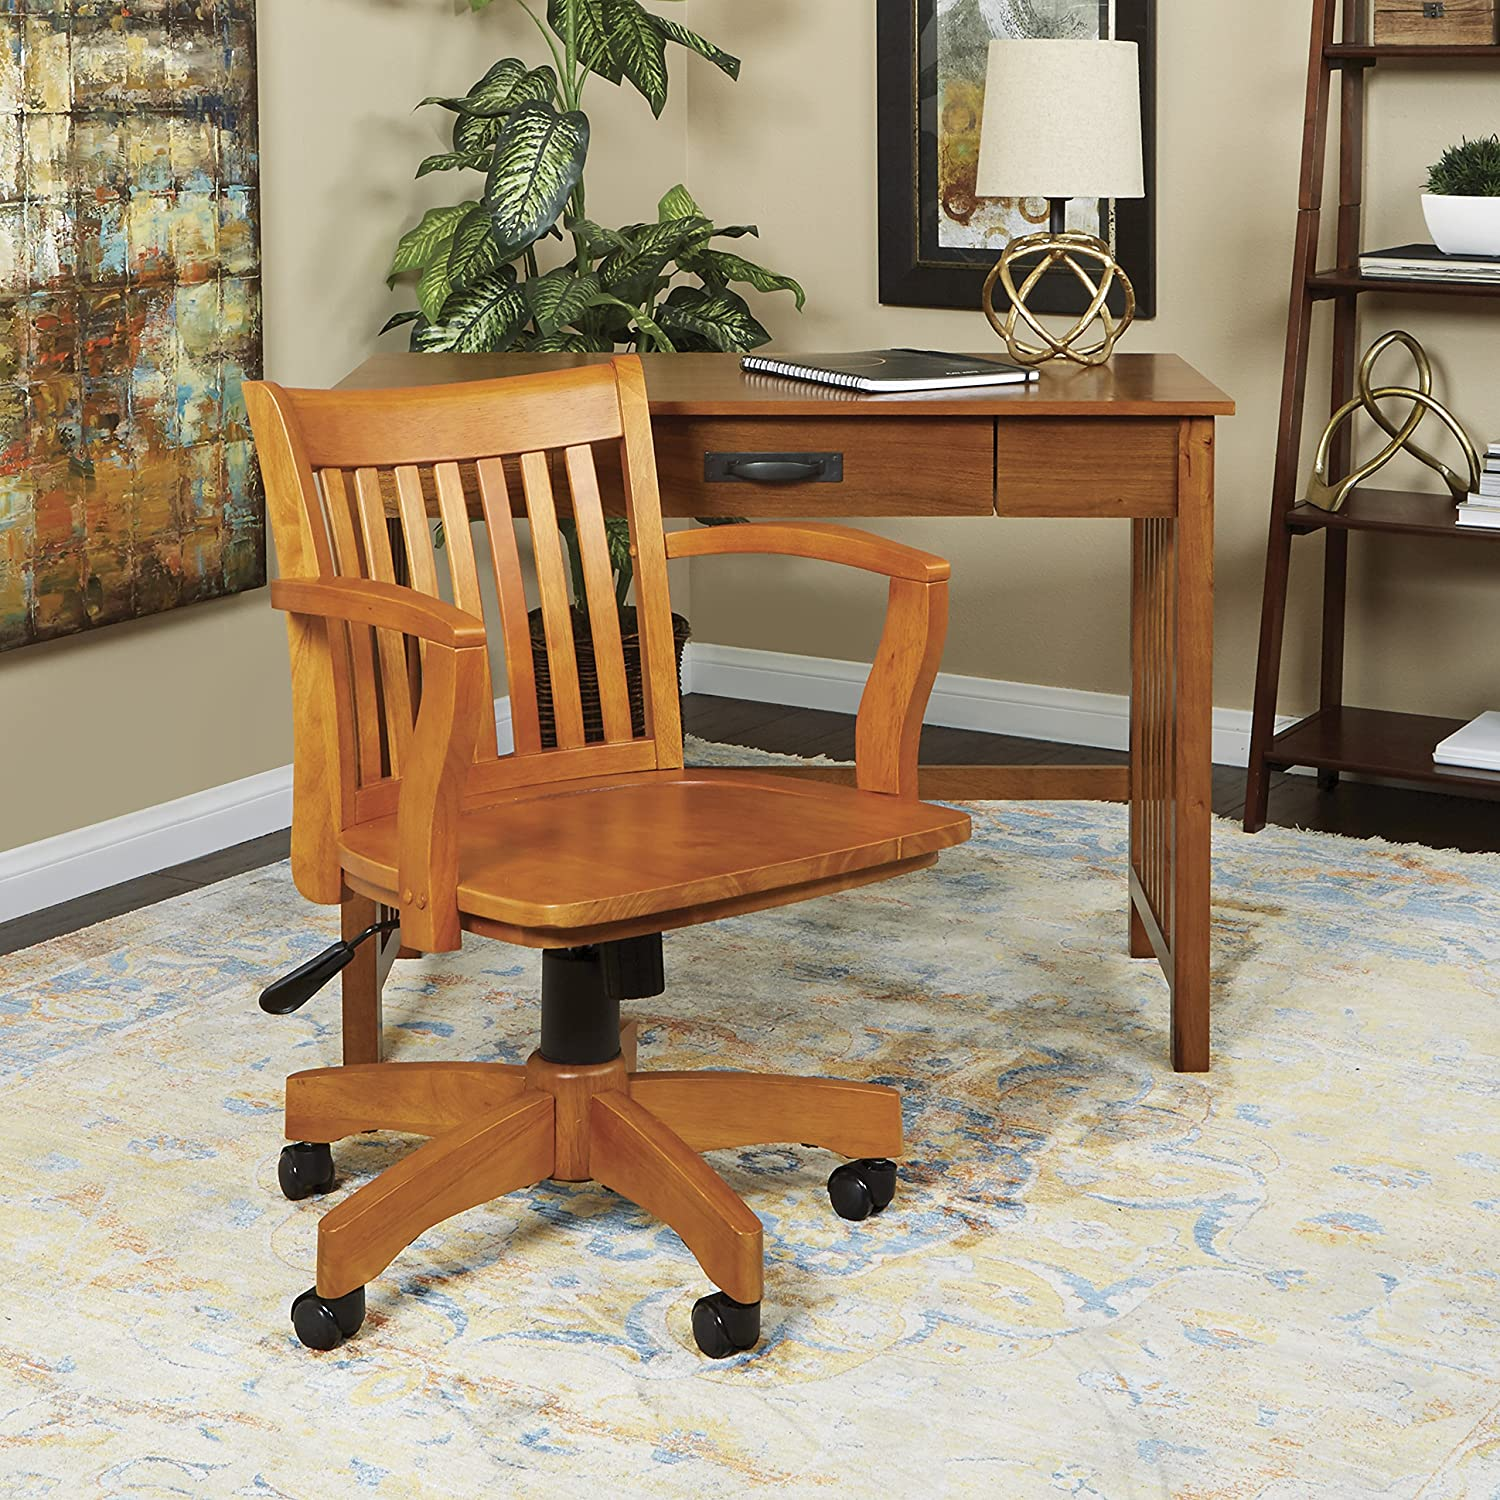 deluxe wooden home office. Amazon.com: Office Star Deluxe Wood Bankers Desk Chair With Seat, Fruit Wood: Kitchen \u0026 Dining Wooden Home